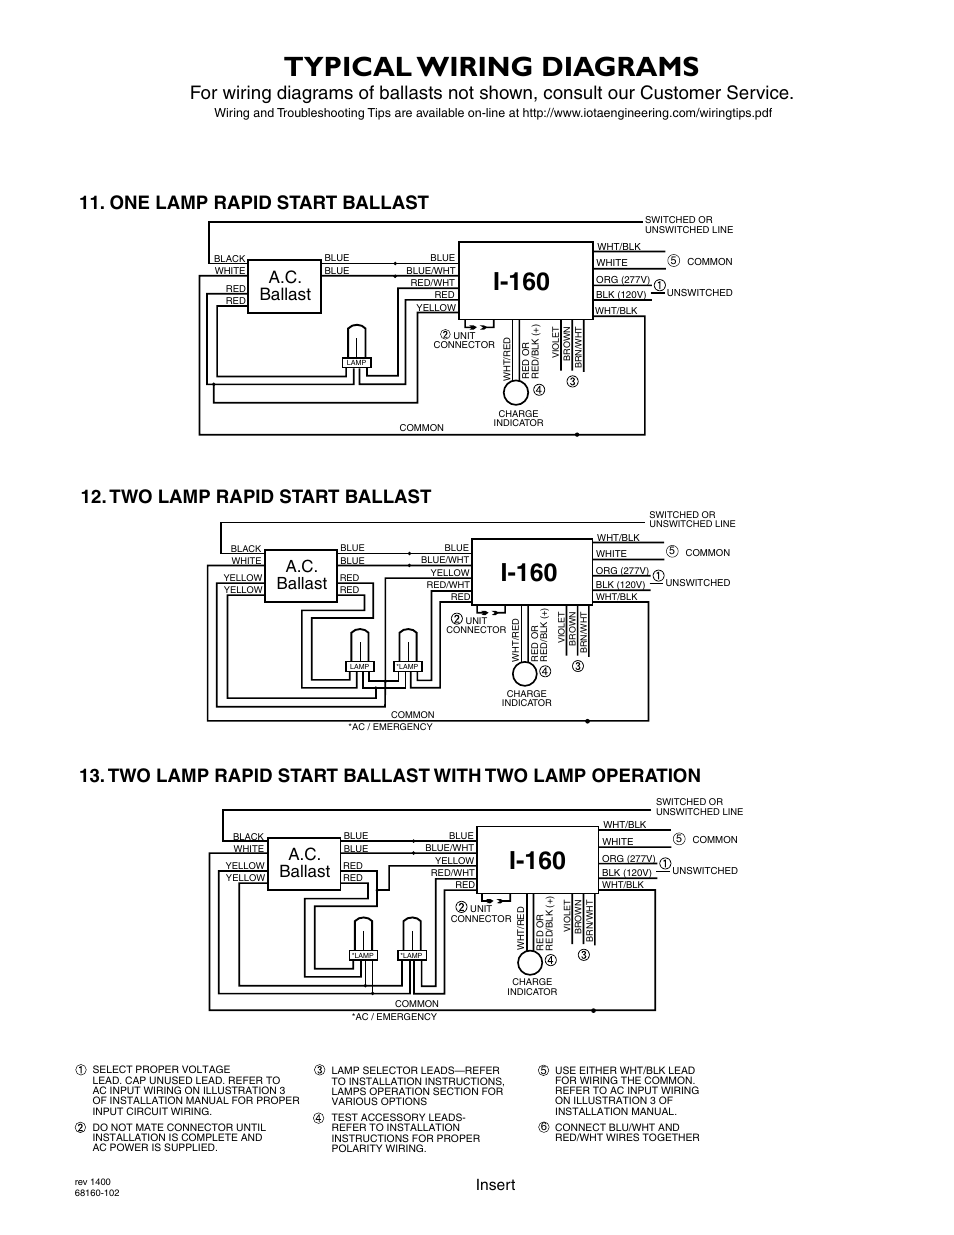 Iota Emergency Ballast Wiring Diagram on free ford explorer diagrams